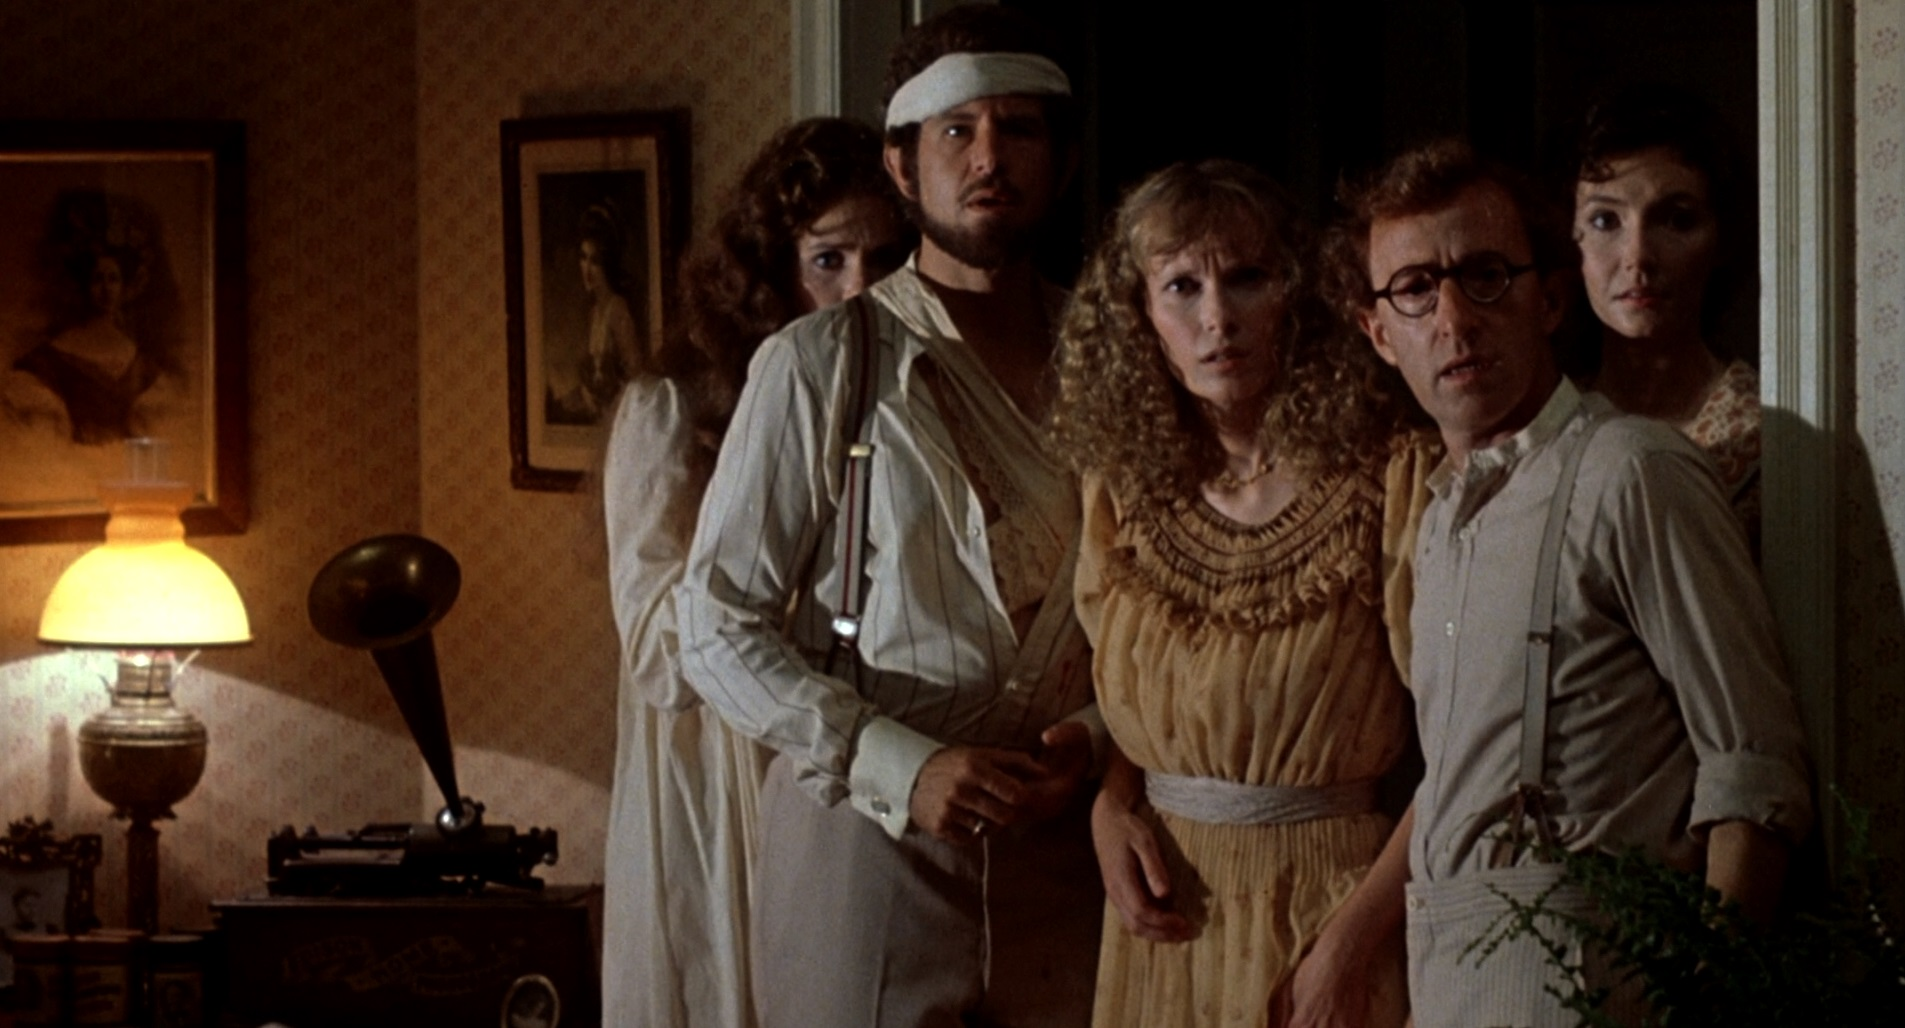 Julie Hagerty, Tony Roberts, Mia Farrow, Woody Allen, Mary Steenburgen in A Midsummer Night's Sex Comedy (1982)